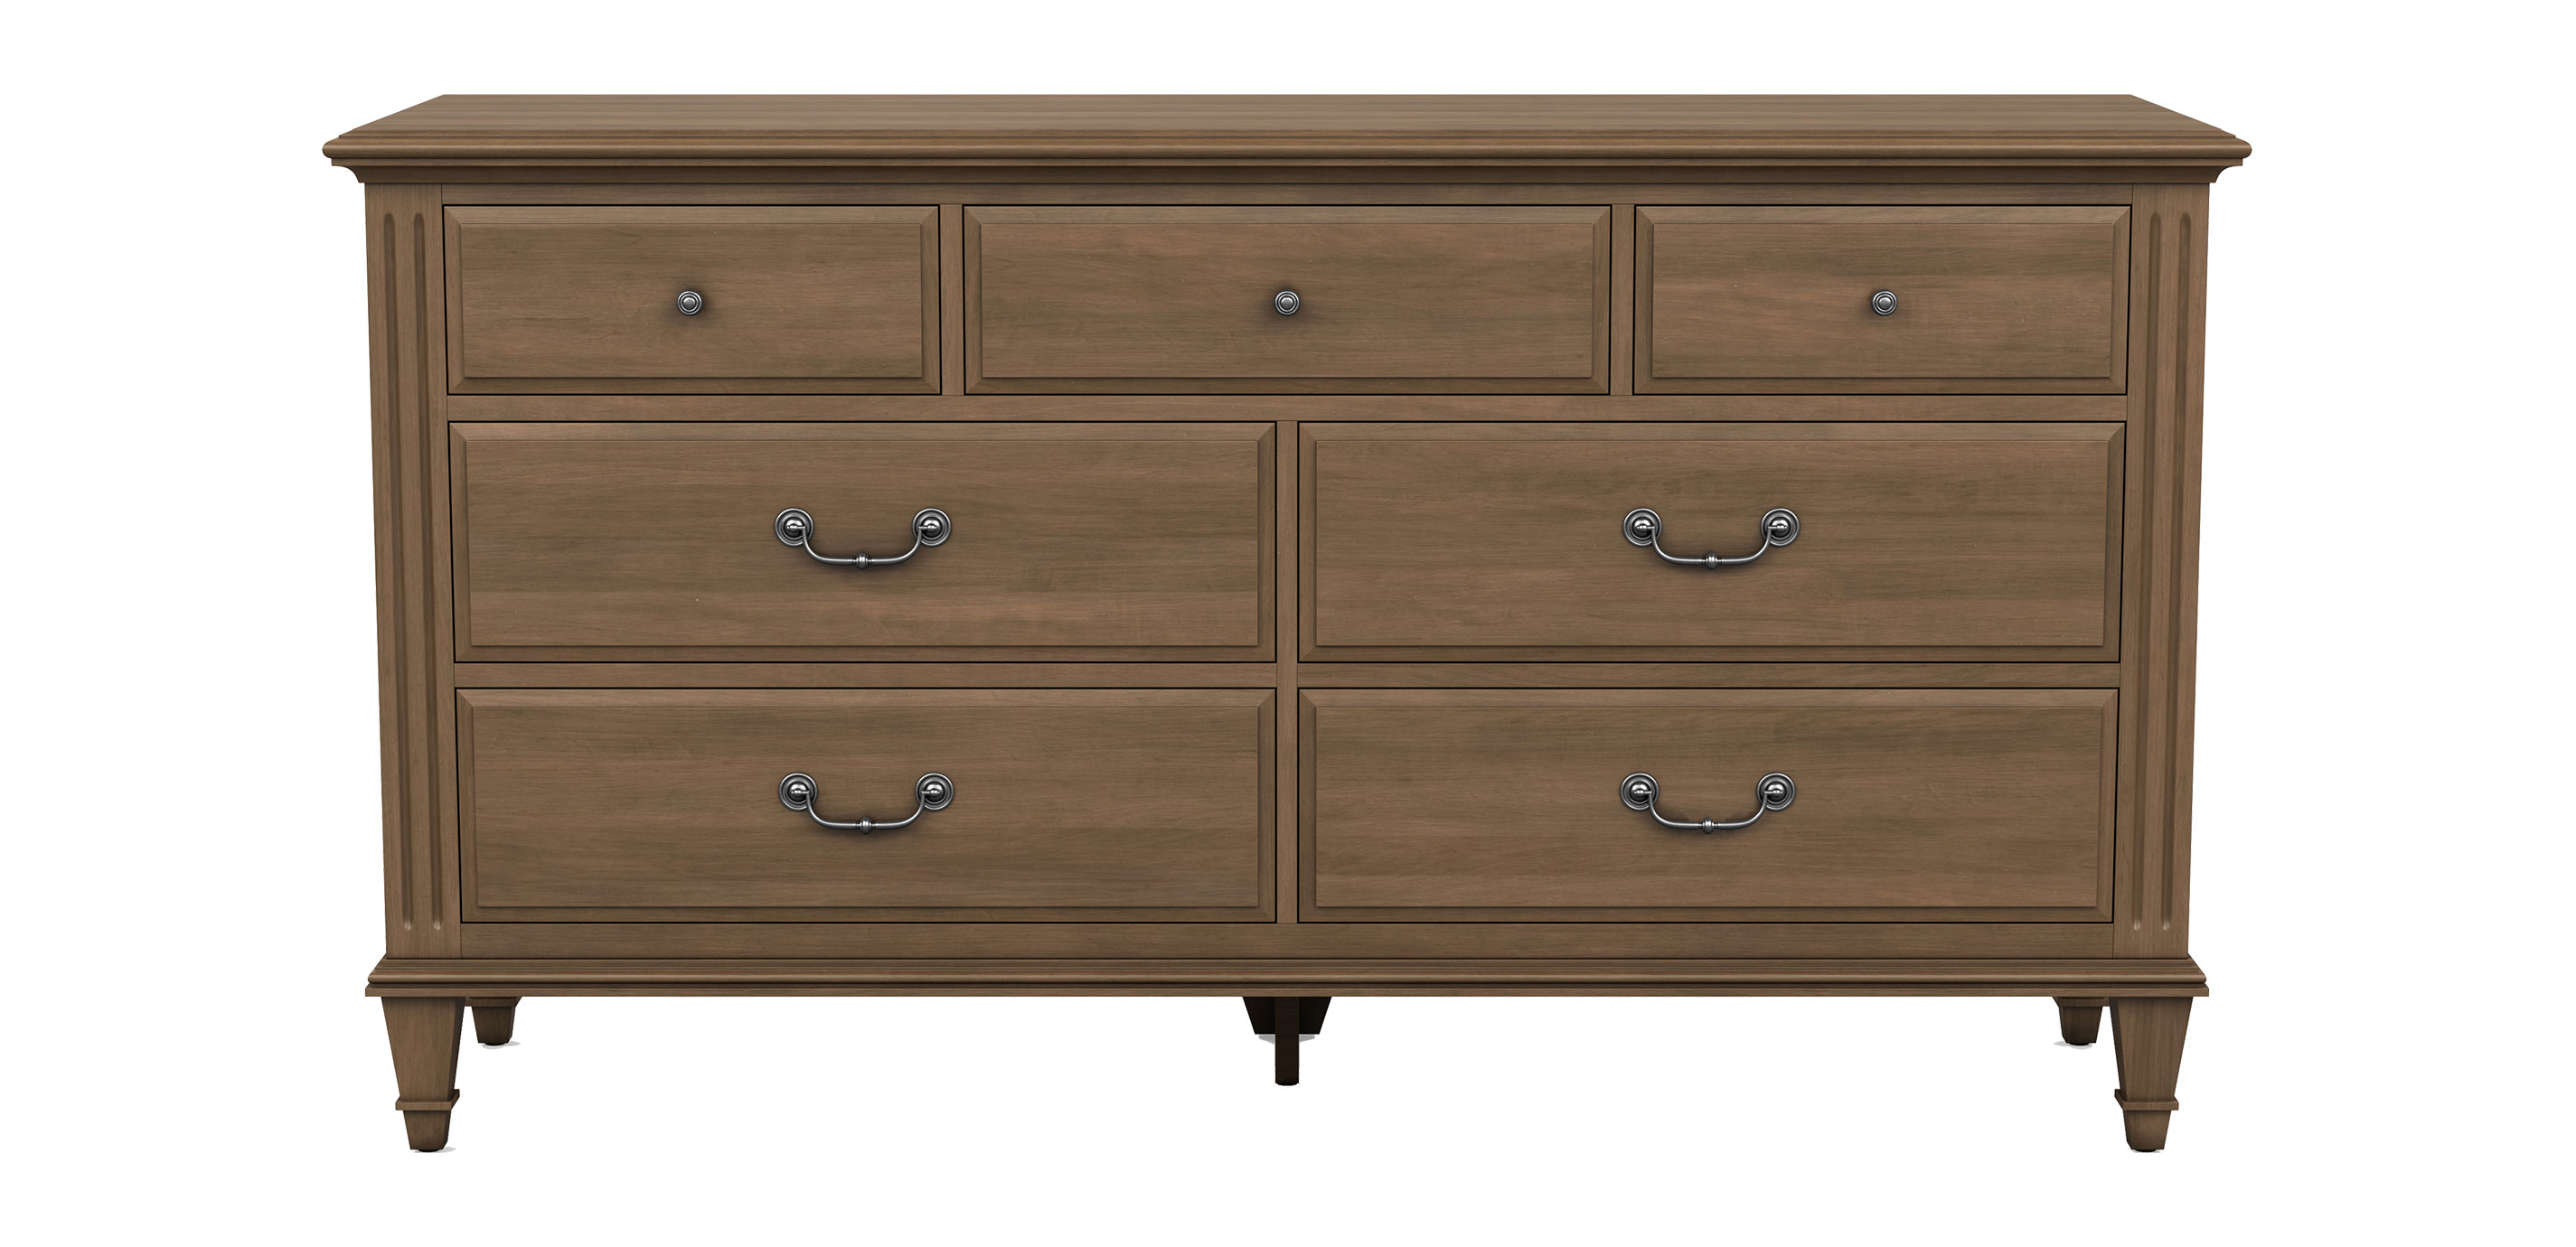 drawered dresser chests bedroom zuri and three modern mirrored dressers black malibu furniture